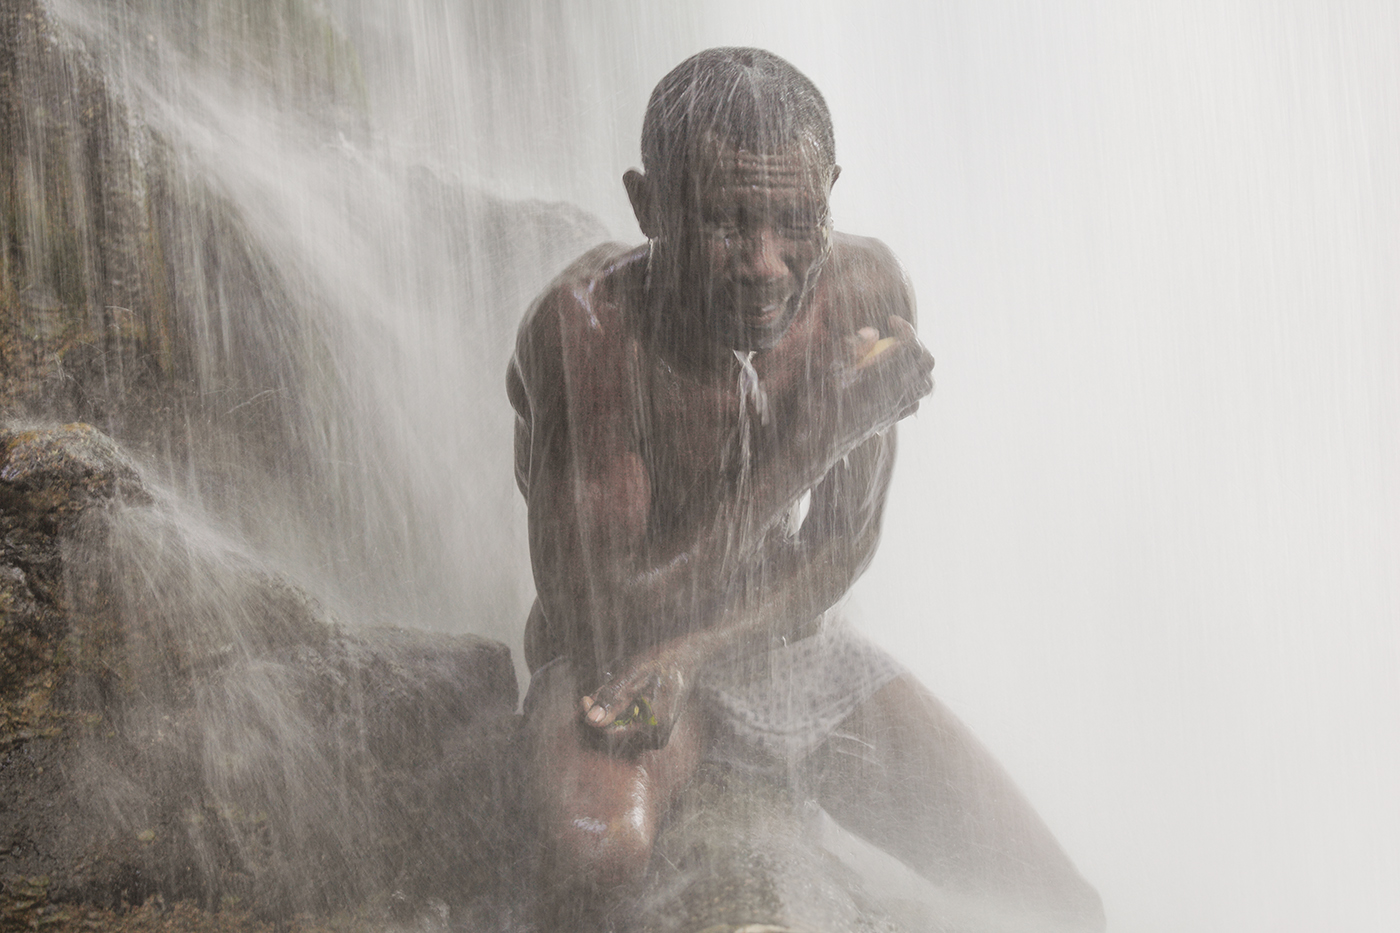 A pilgrim braces himself beneath the pounding waters of Saut-d'Eau.  The Vodou ancestor spirit, Danbhalah, is believed to have plunged into these abyssal waters in order to induce the abysses to give birth to the world.